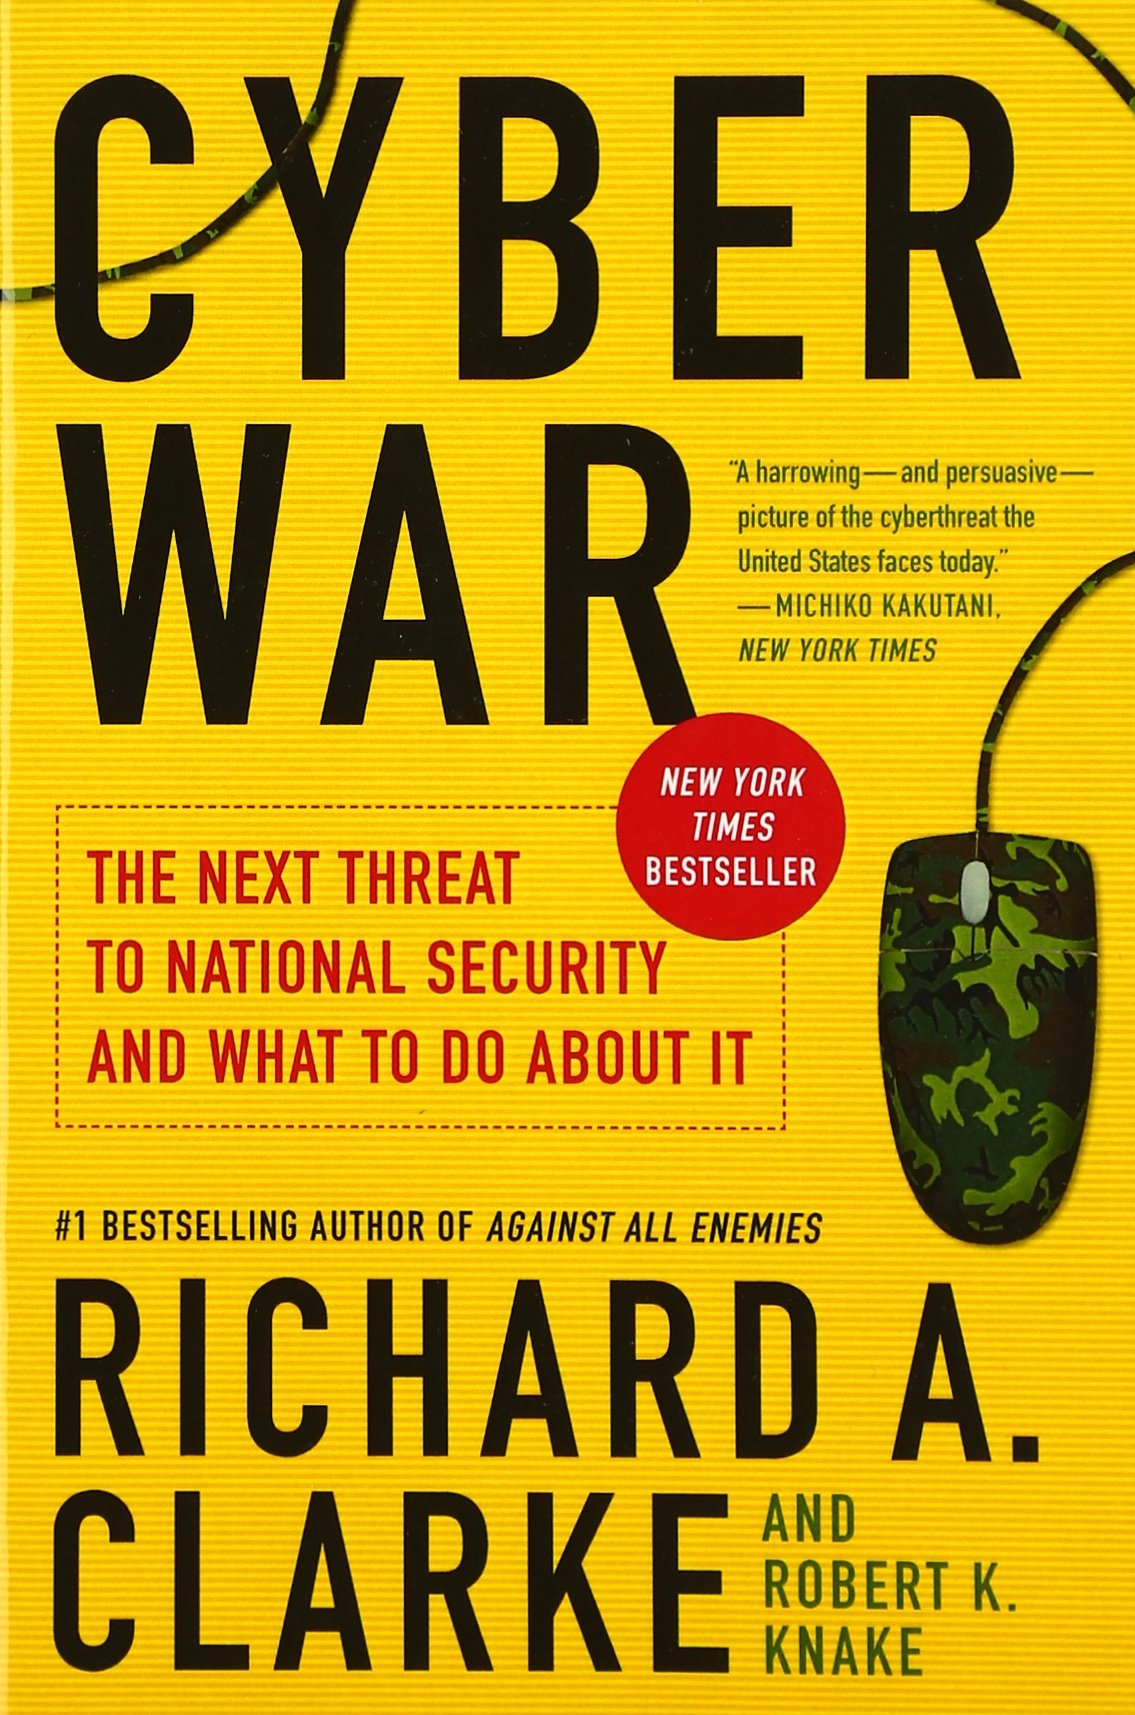 Cyber War Threat National Security product image